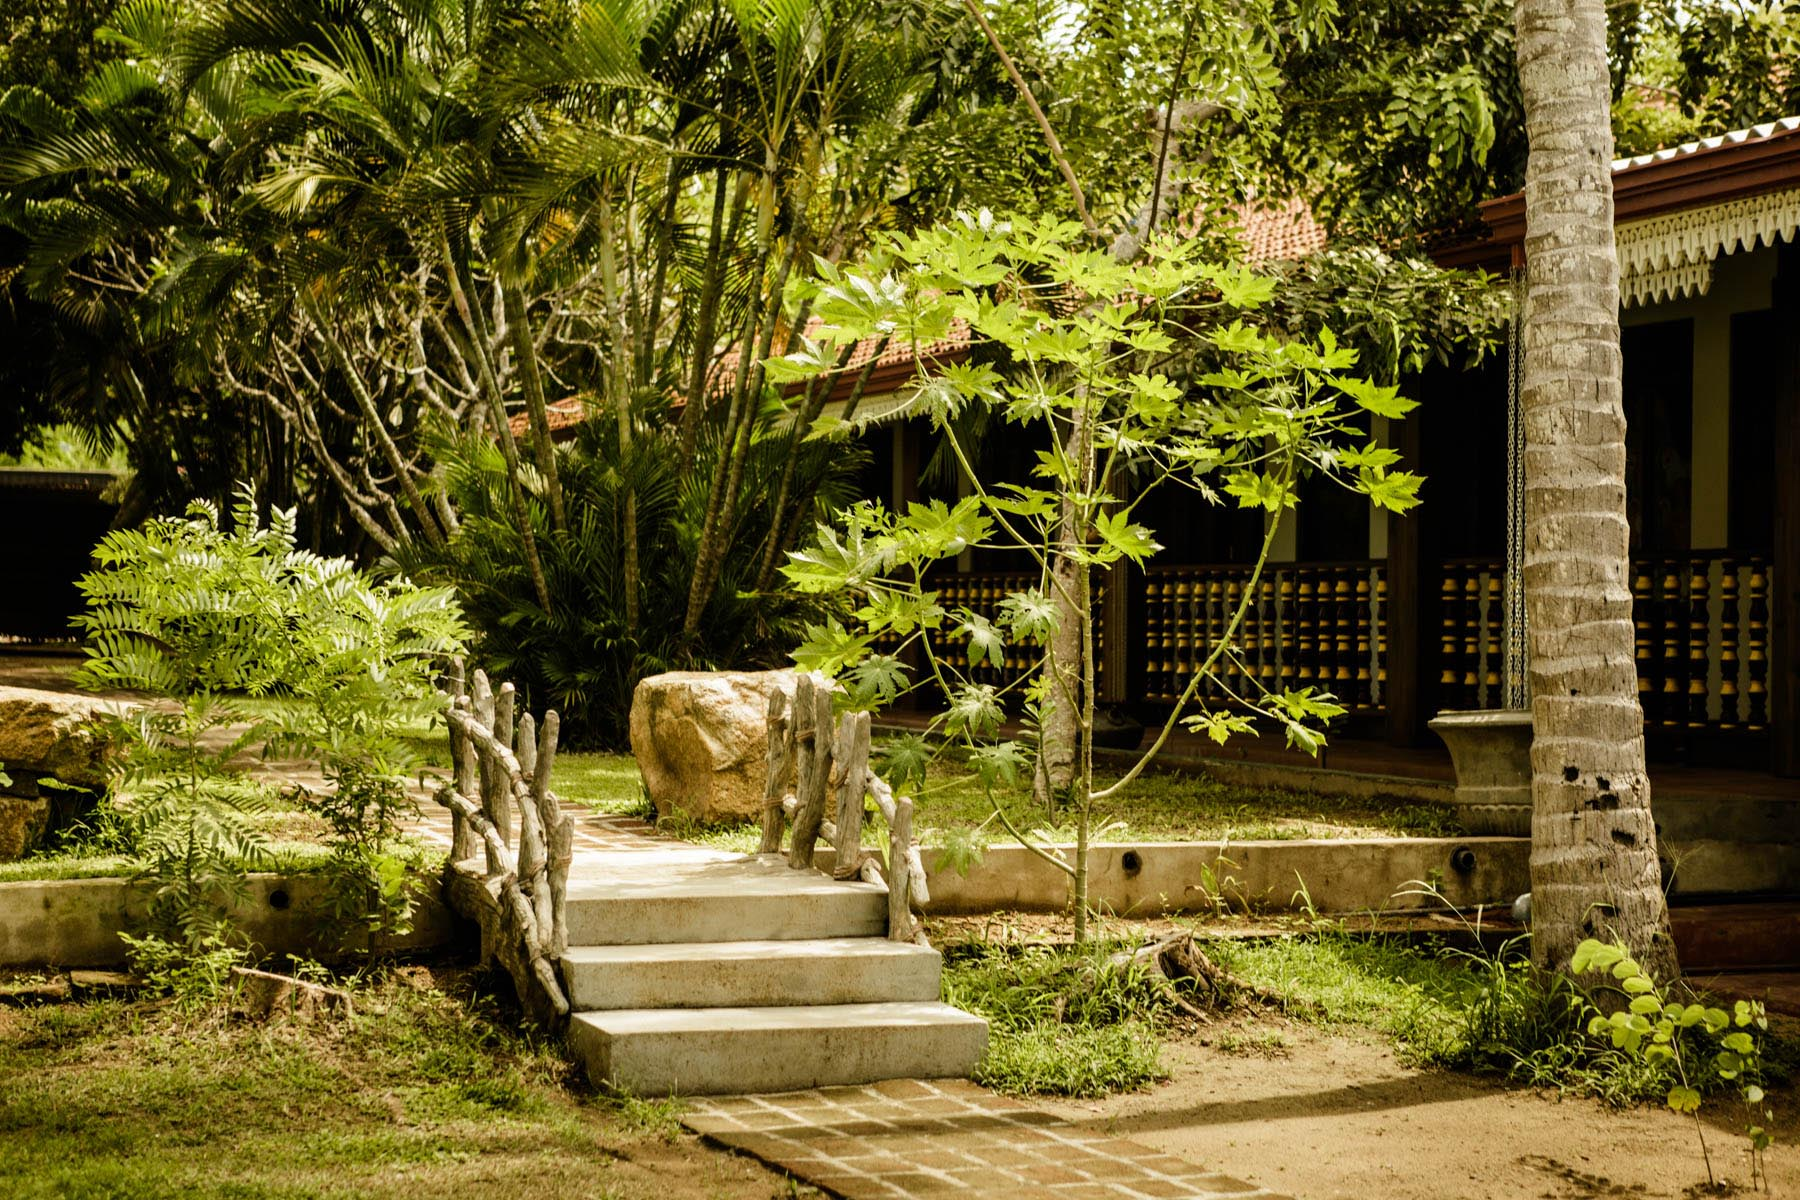 thaulle-resort-sri-lanka-garden-green-philosophie-ayurveda-center-1